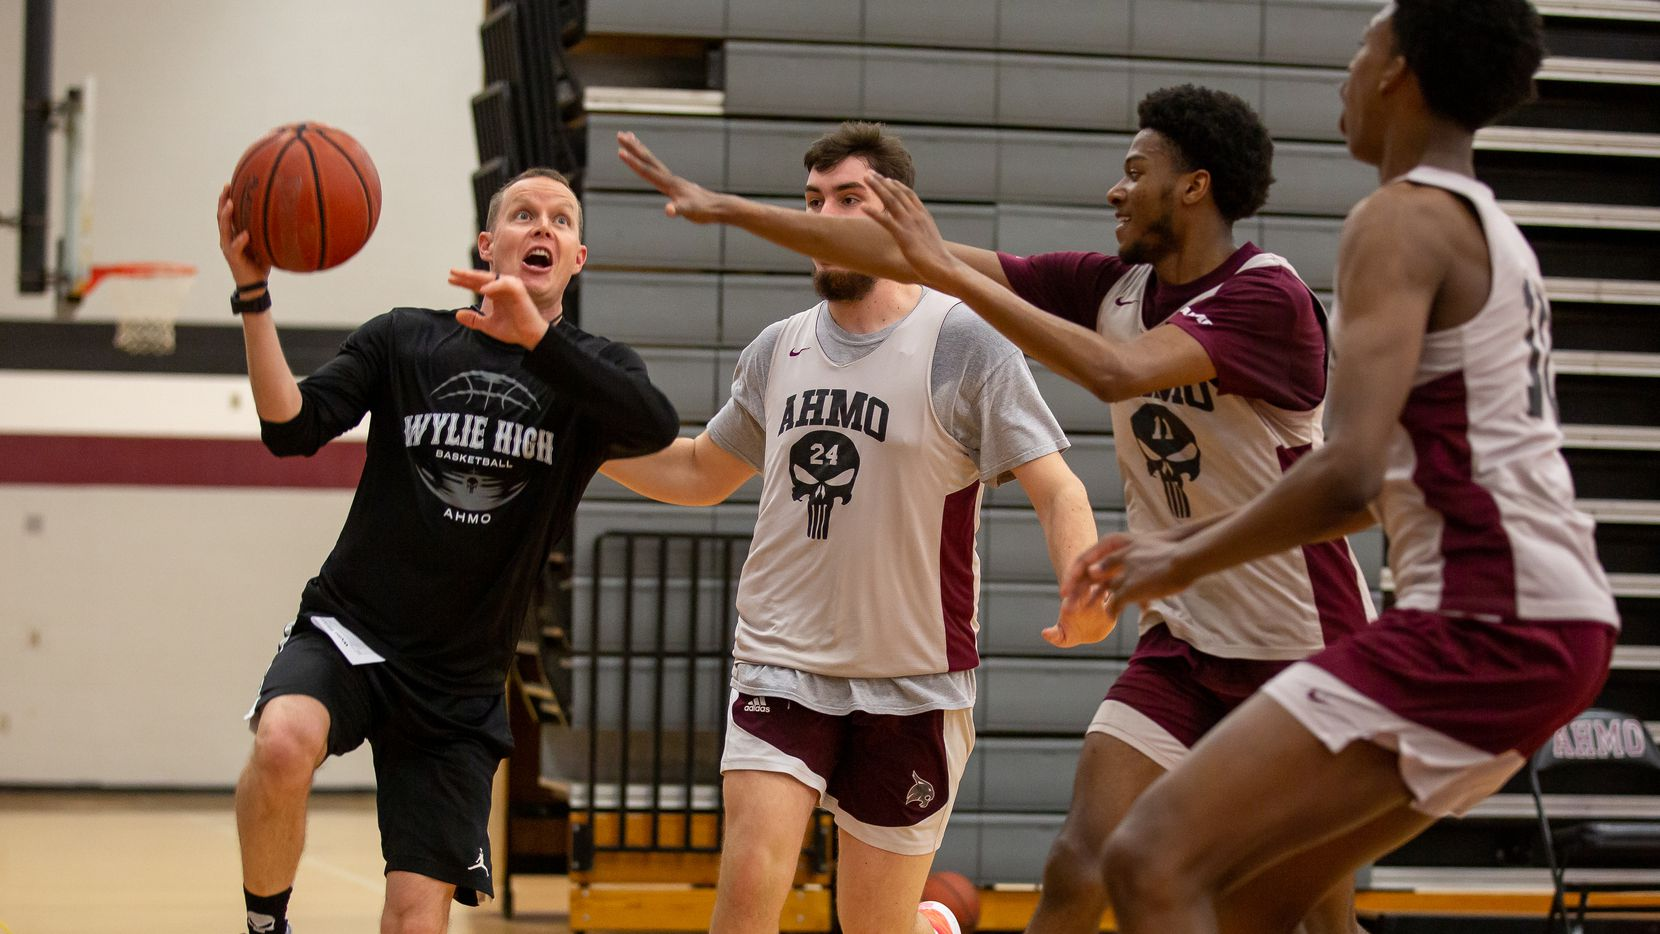 Wylie High School head basketball coach Stephen Pearce prepares to jump for a layup as he plays through a drill during practice at Wylie High School on March 11, 2020 in Wylie, Texas. (Kara Dry/Special Contributor)